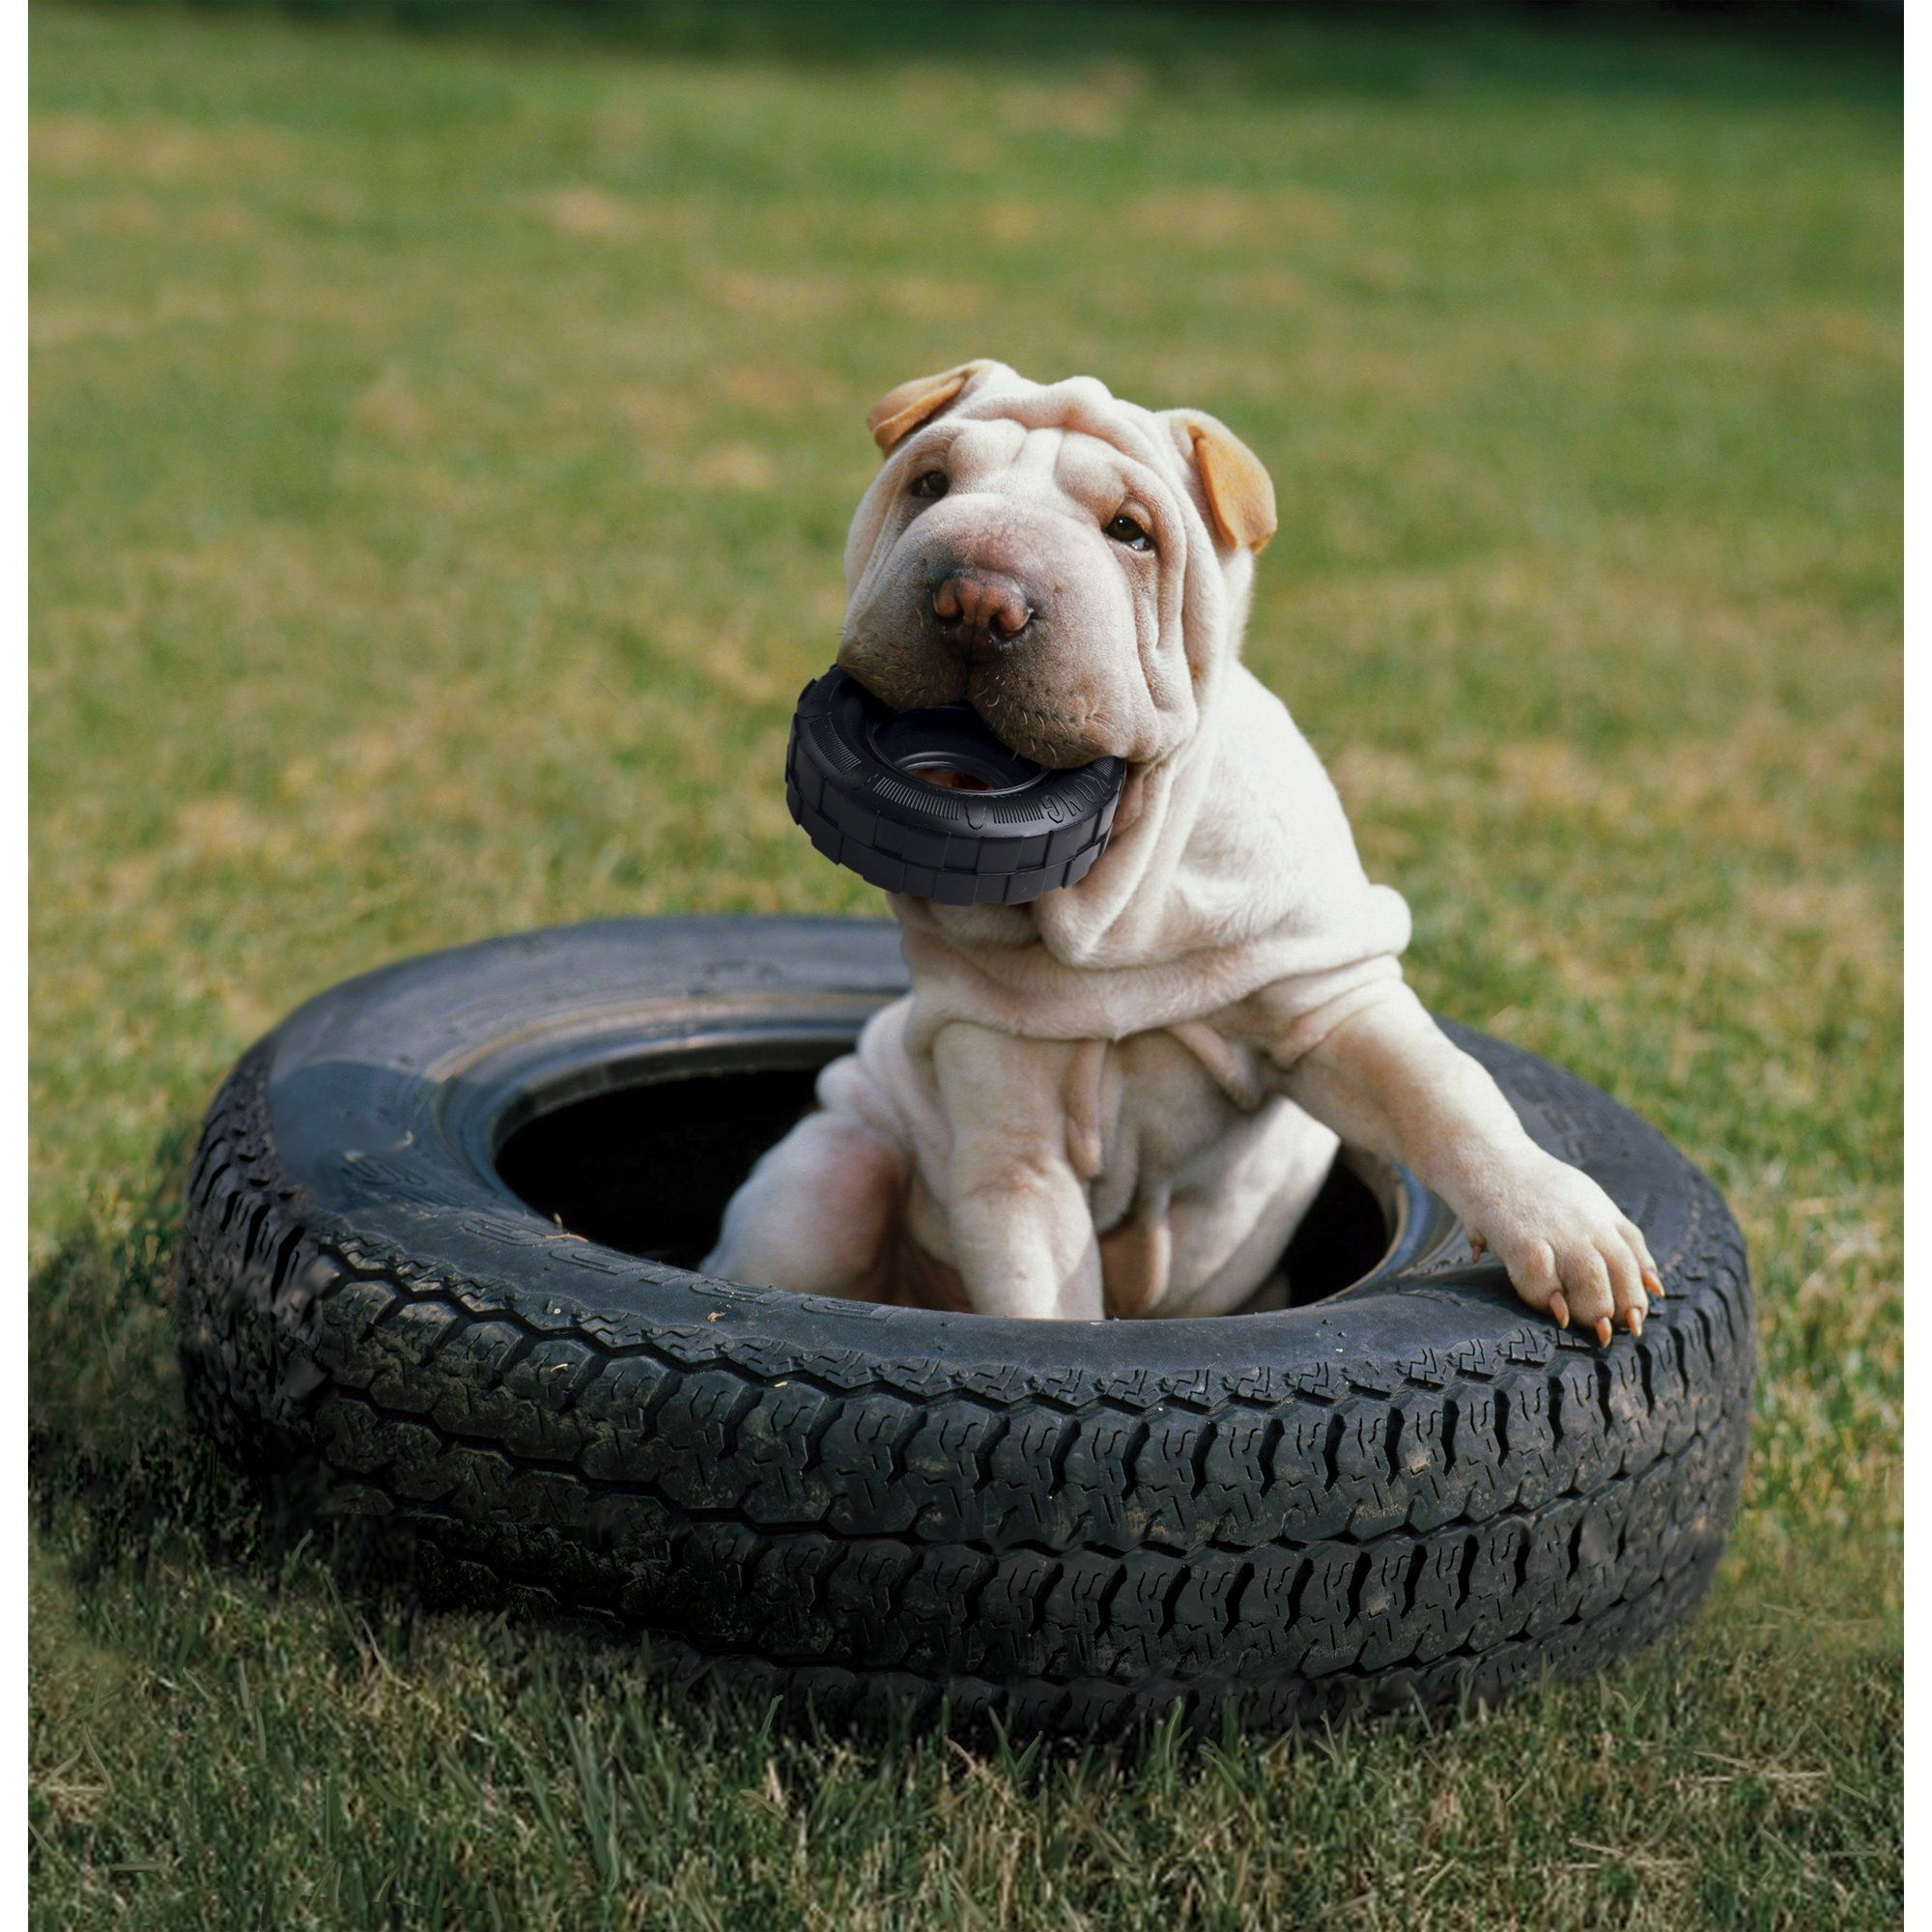 Kong Traxx Tire Dog Toy Small Black Best Dog Toys Outdoor Dog